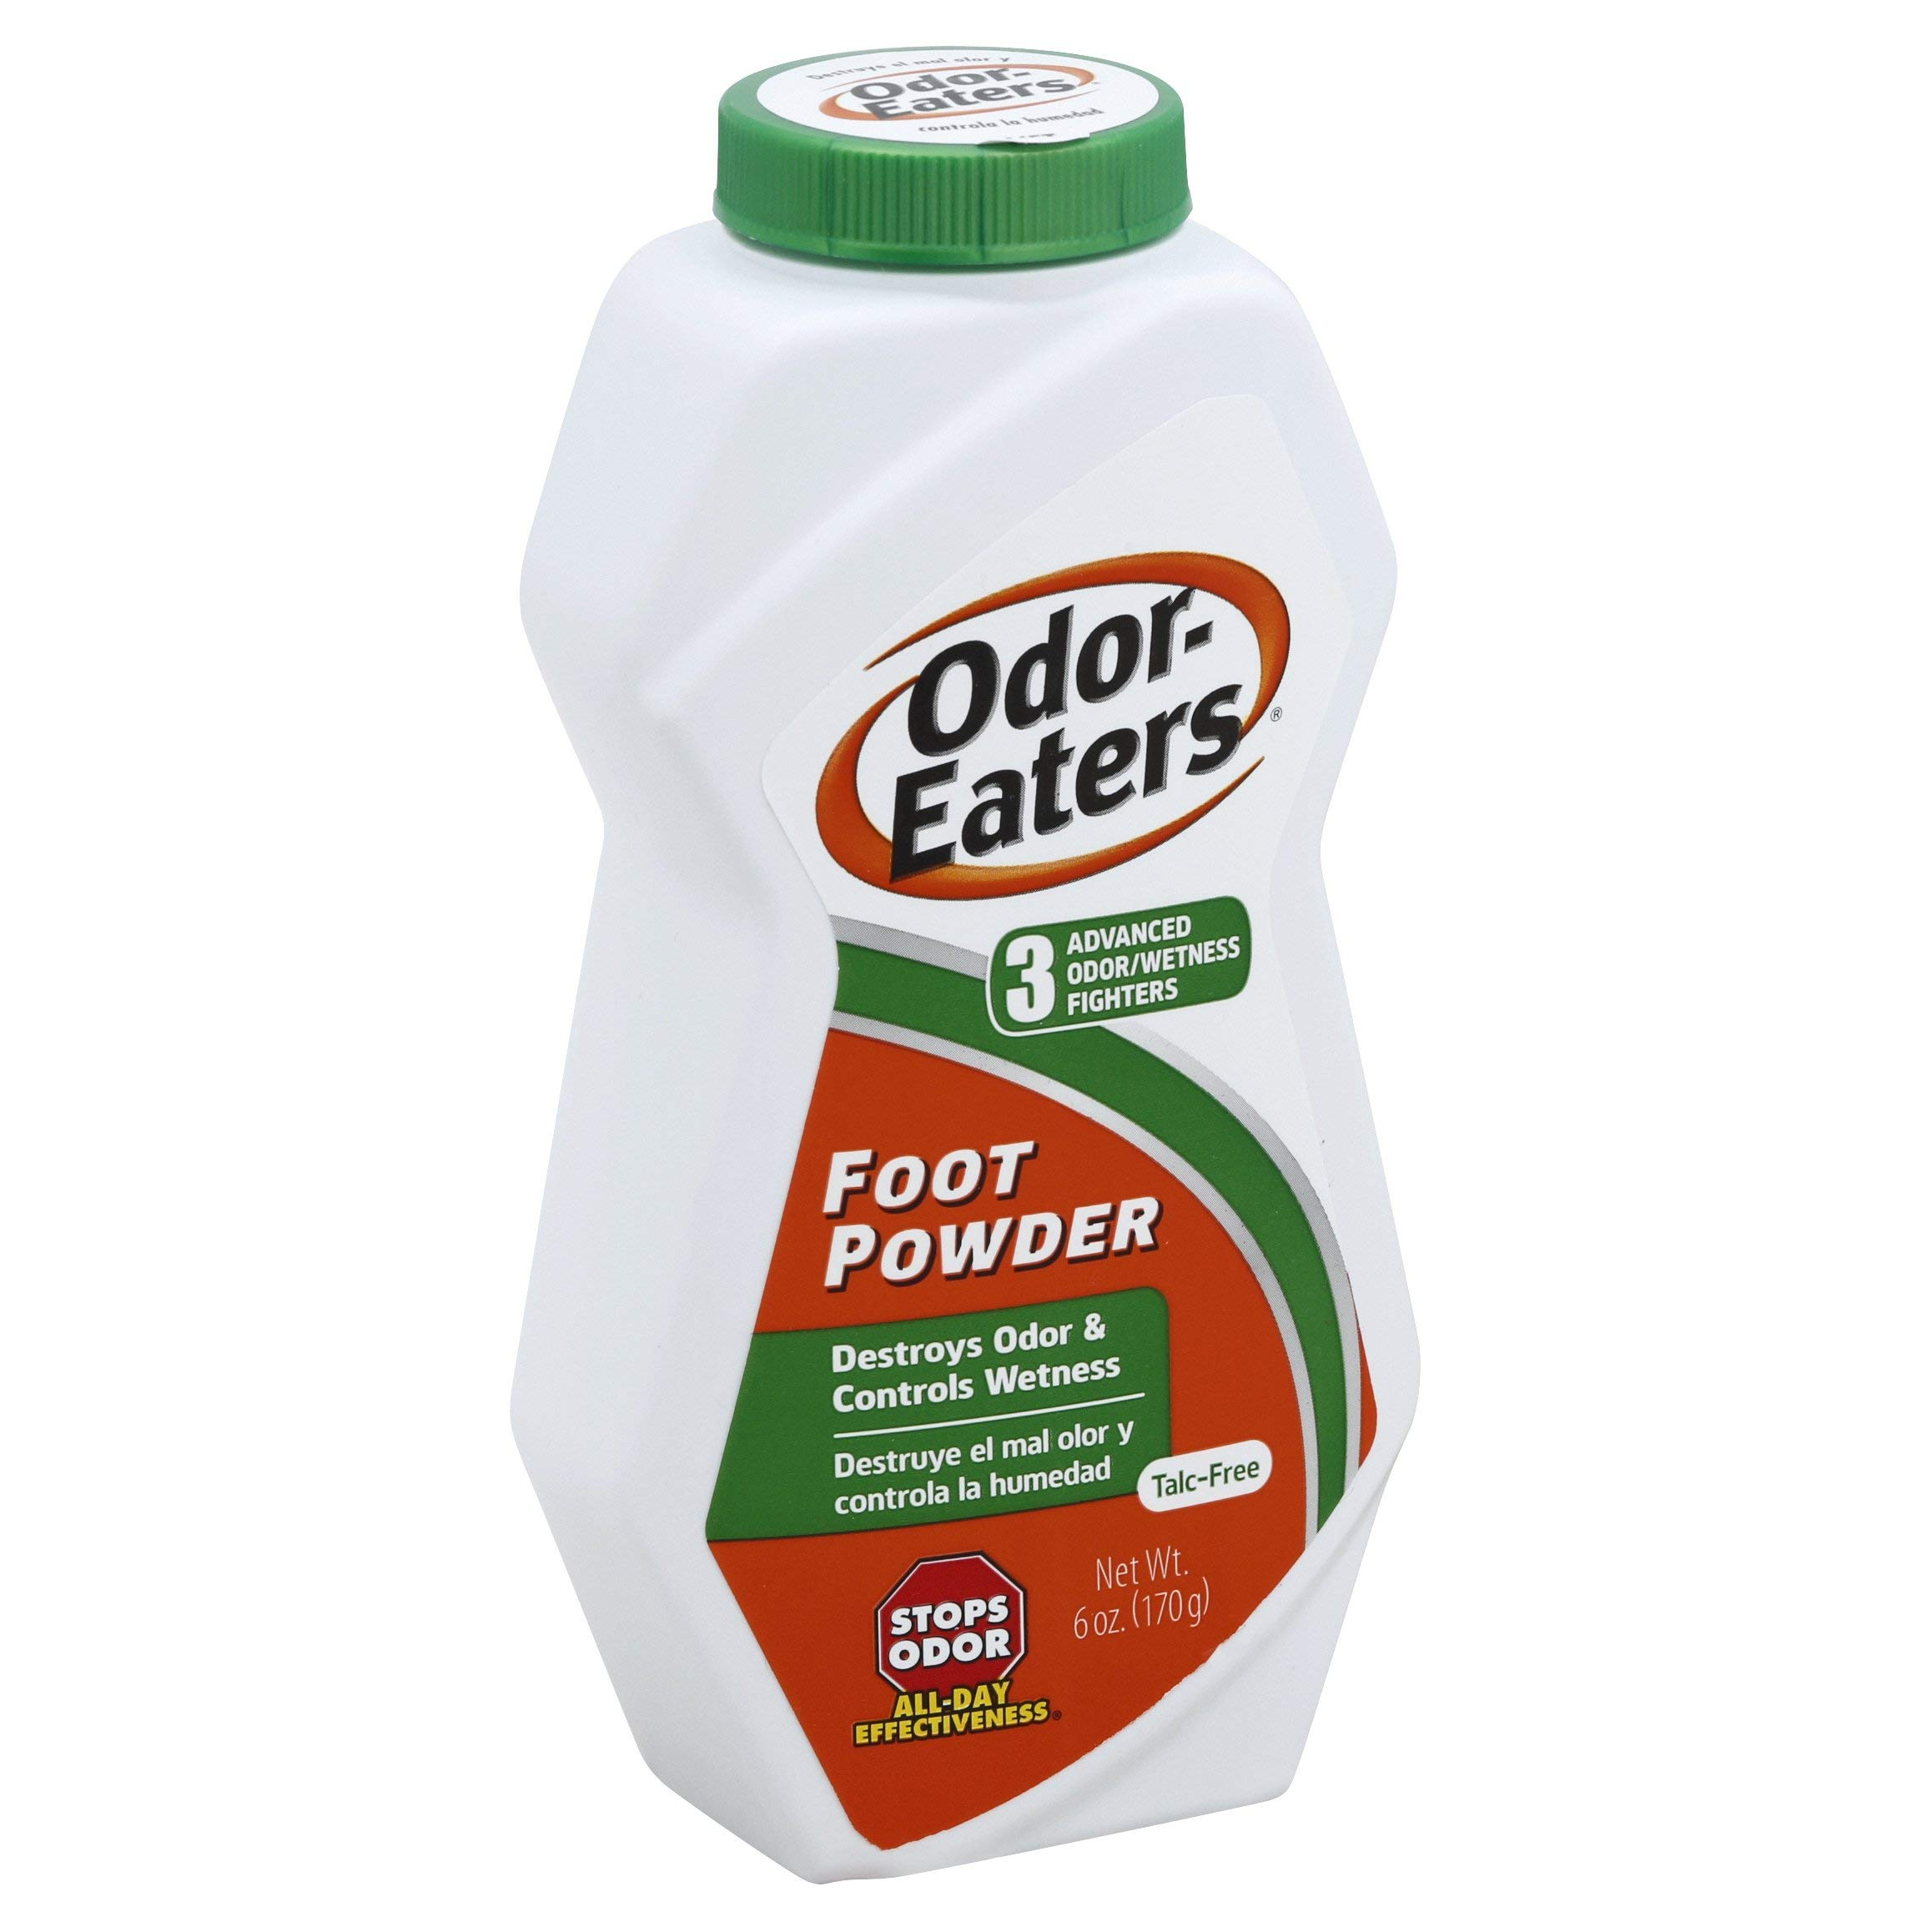 Odor-Eaters Foot Powder, 6-Ounces (Pack of 4) by Odor-Eaters